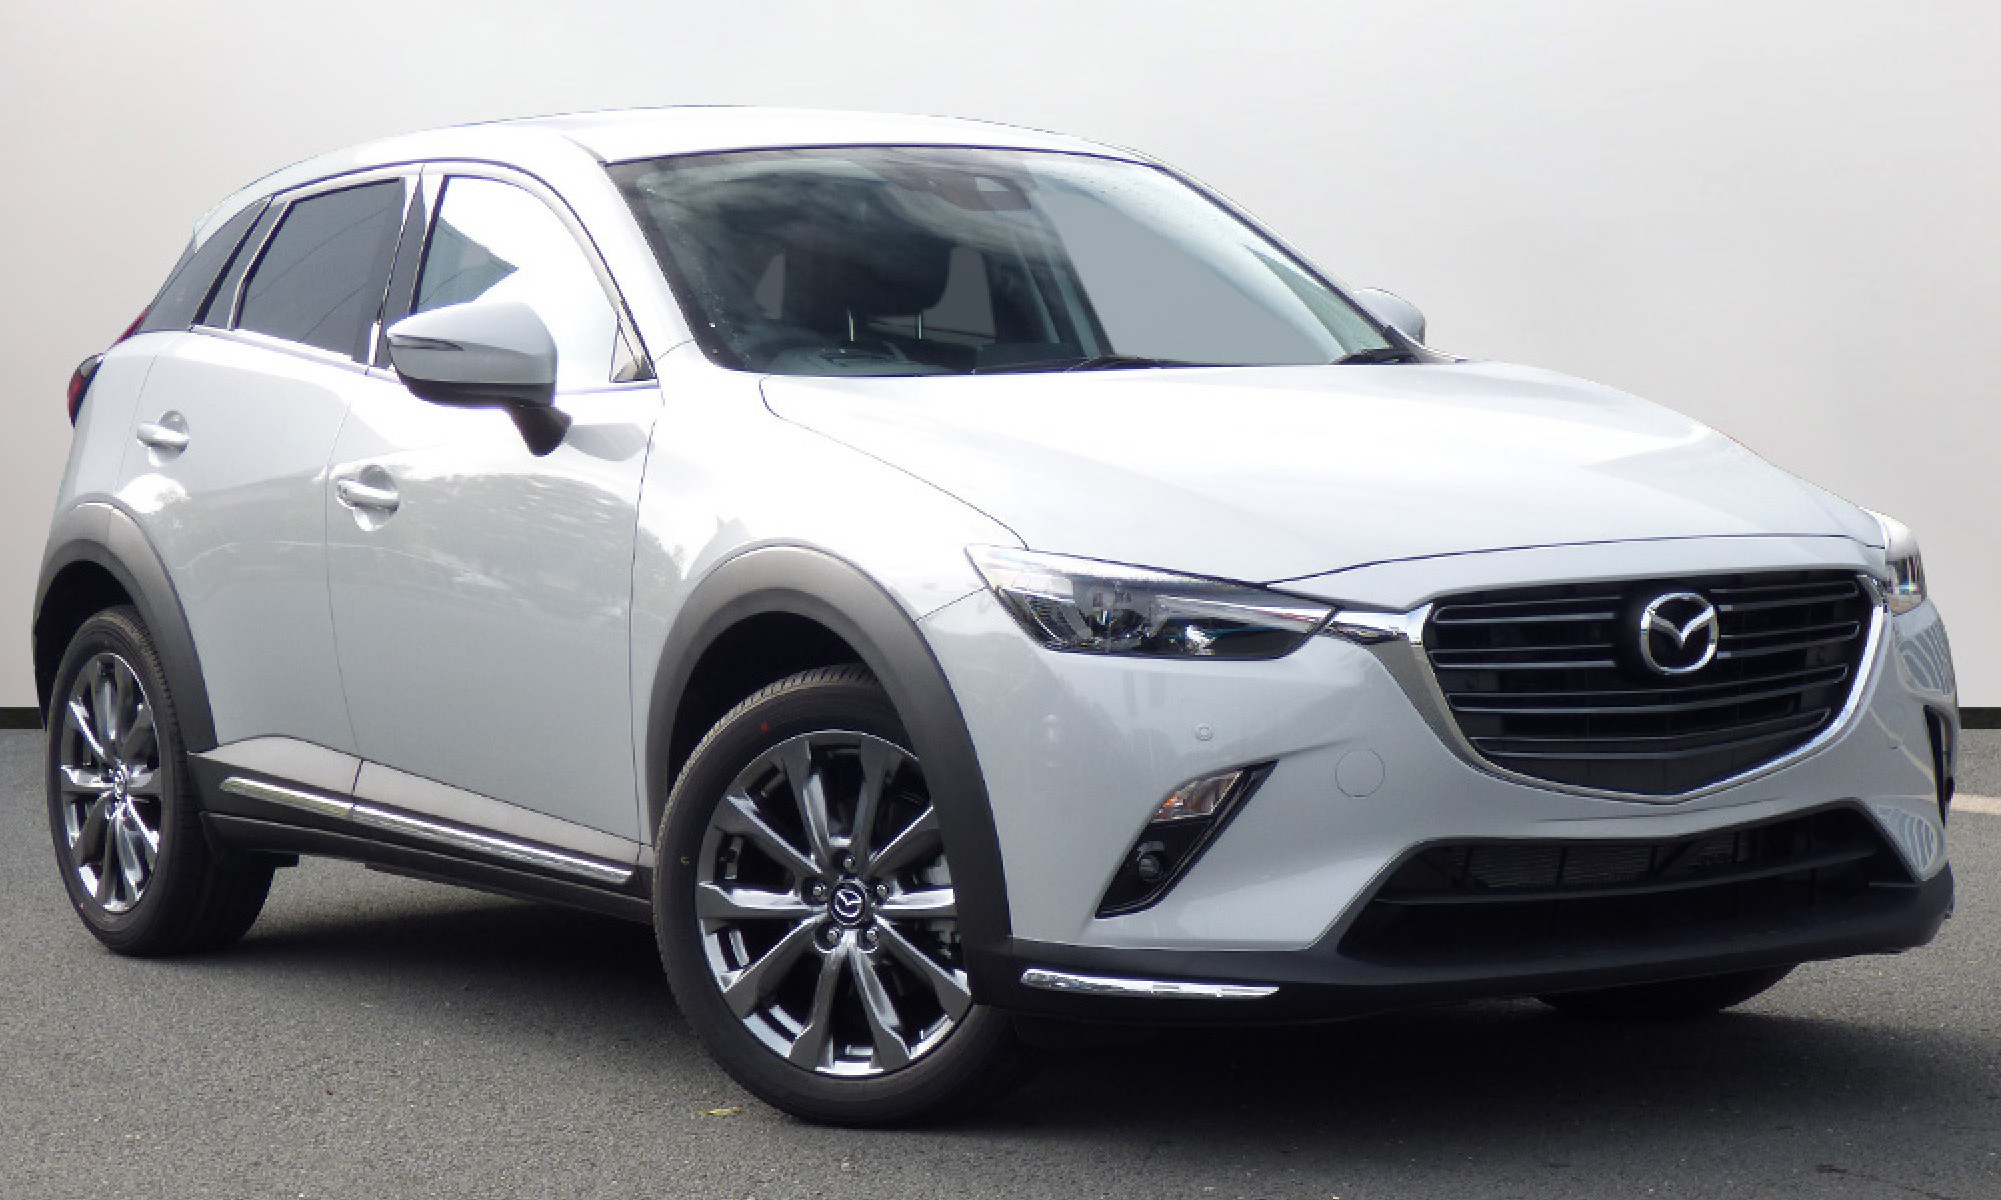 White Mazda CX-3 facing 3/4 right